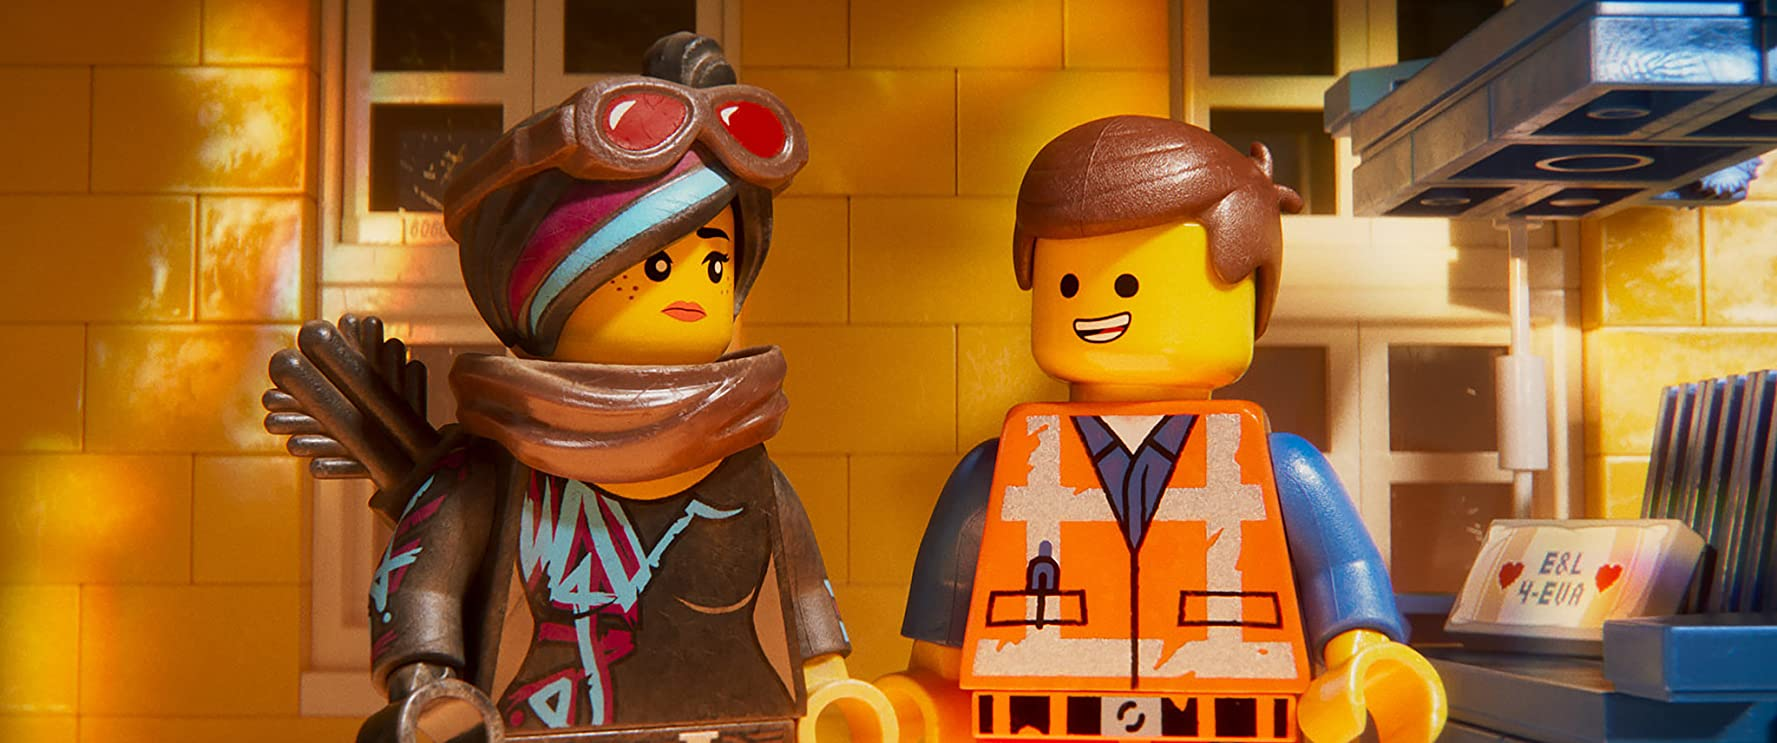 Elizabeth Banks and Chris Pratt in The Lego Movie 2: The Second Part (2019)